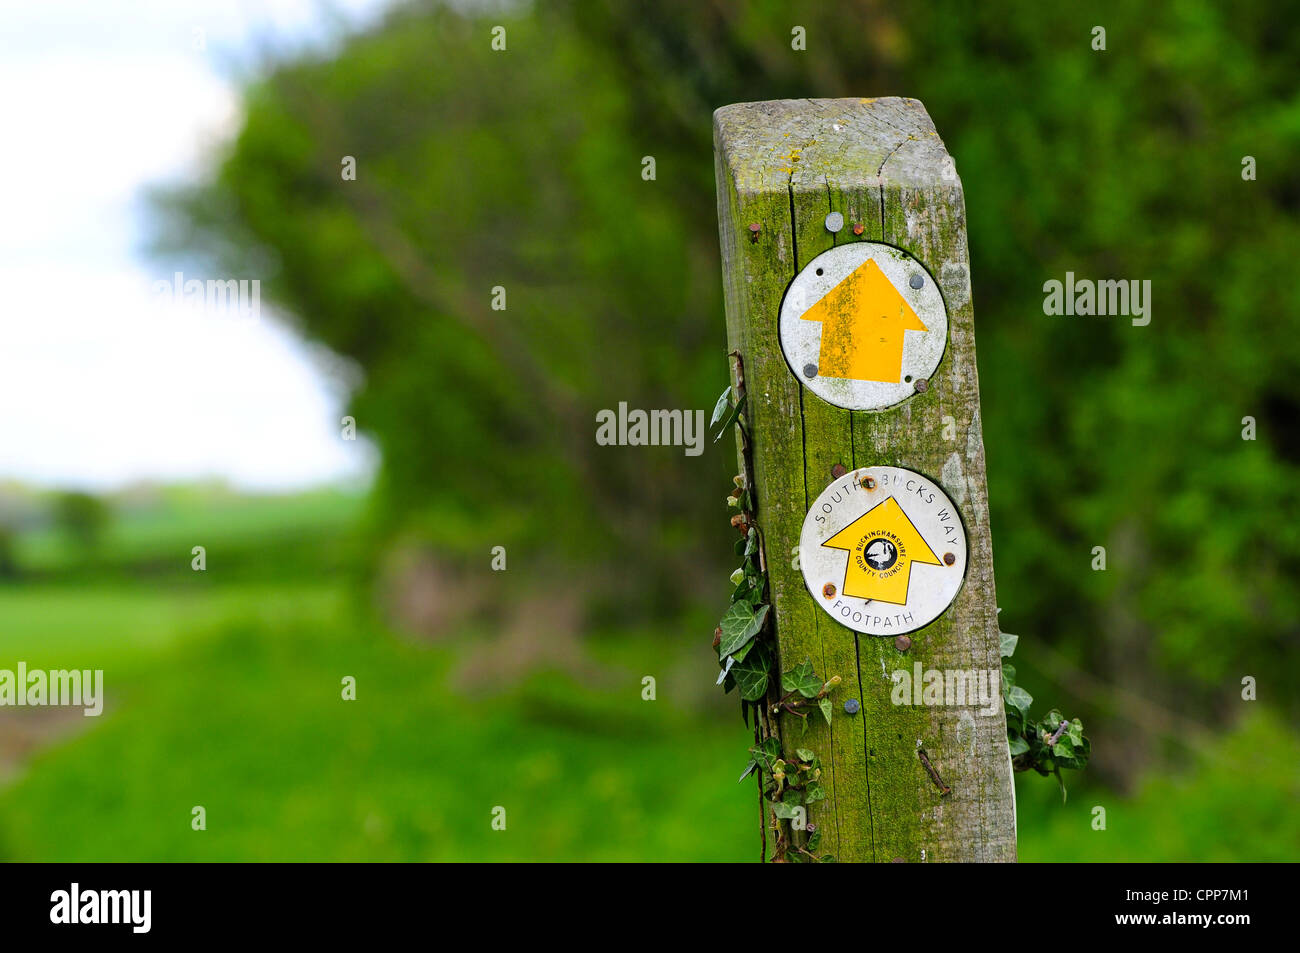 South Bucks Way footpath sign in the Chilterns, Buckinghamshire, UK - Stock Image